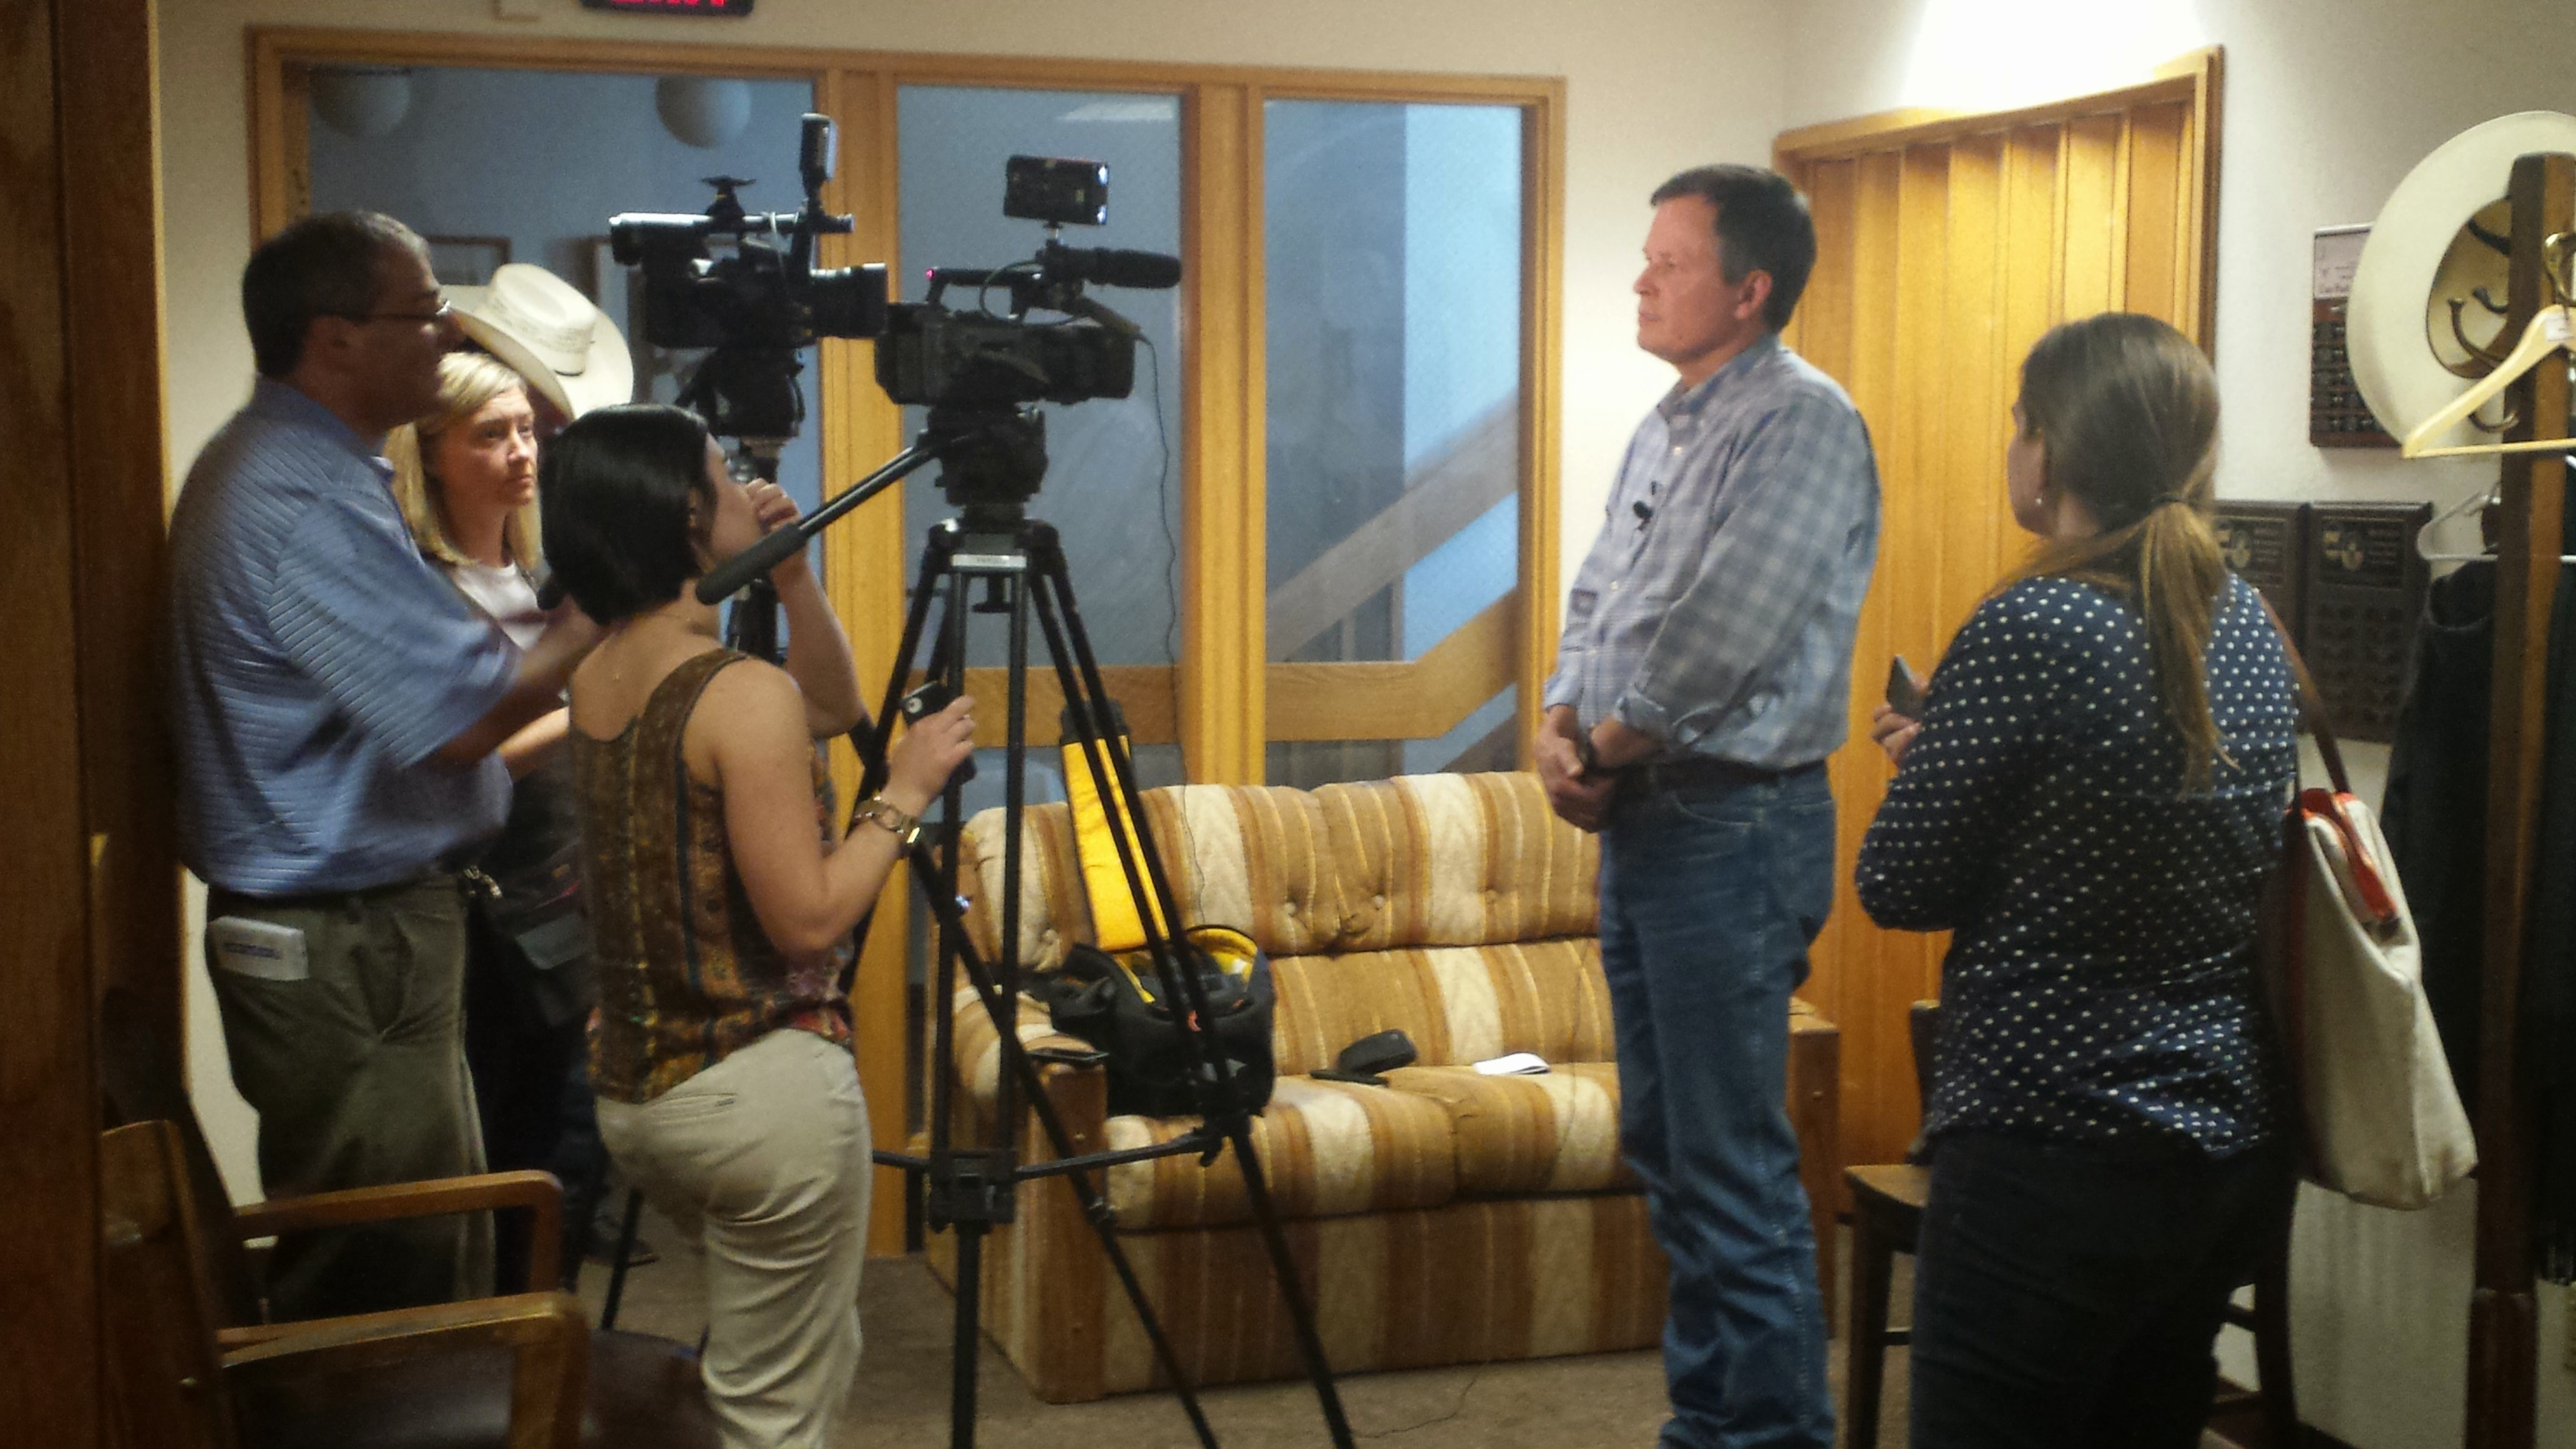 Congressman Steve Daines answers questions from local television reporters prior to a meeting with Montana agricultural groups at the Stockgrowers office on August 7, 2014